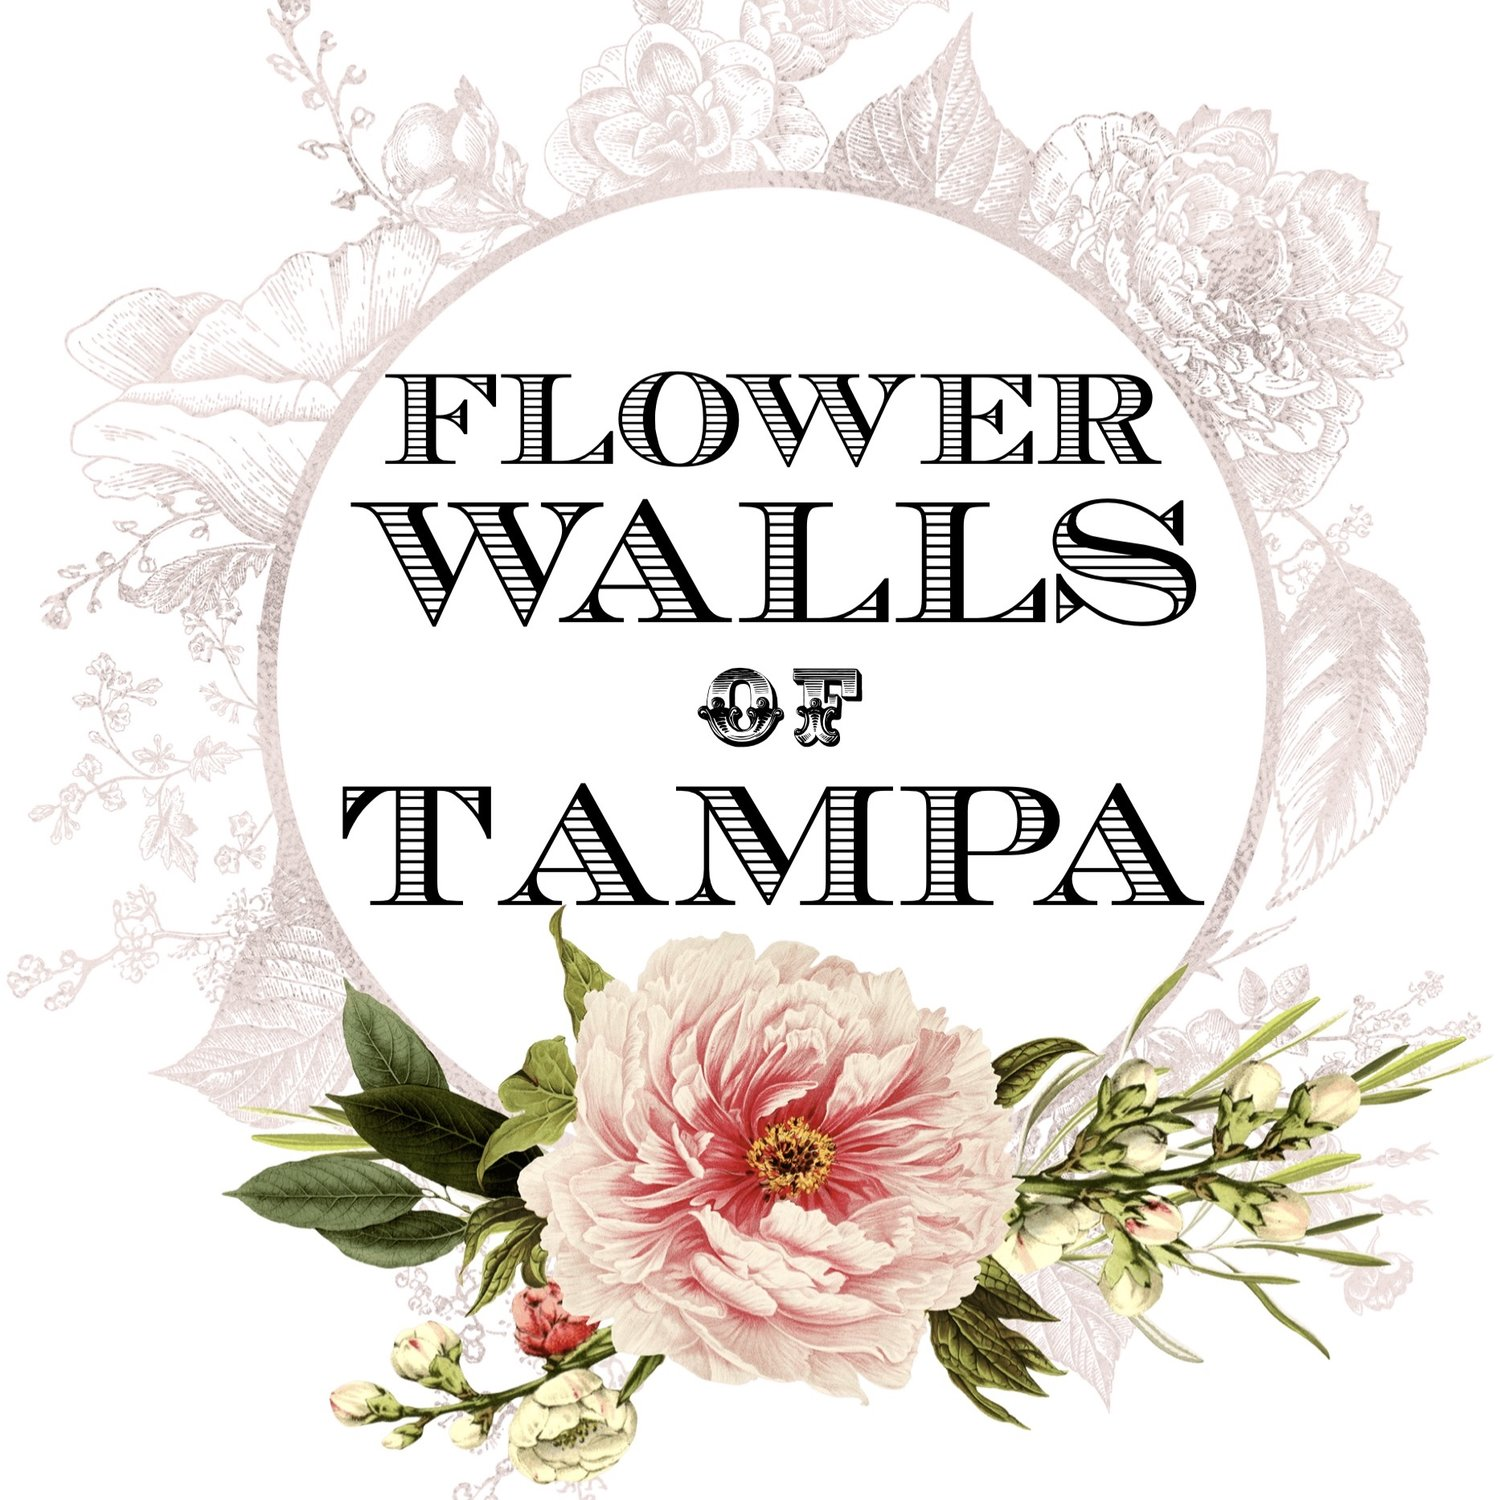 Flower Walls of Tampa